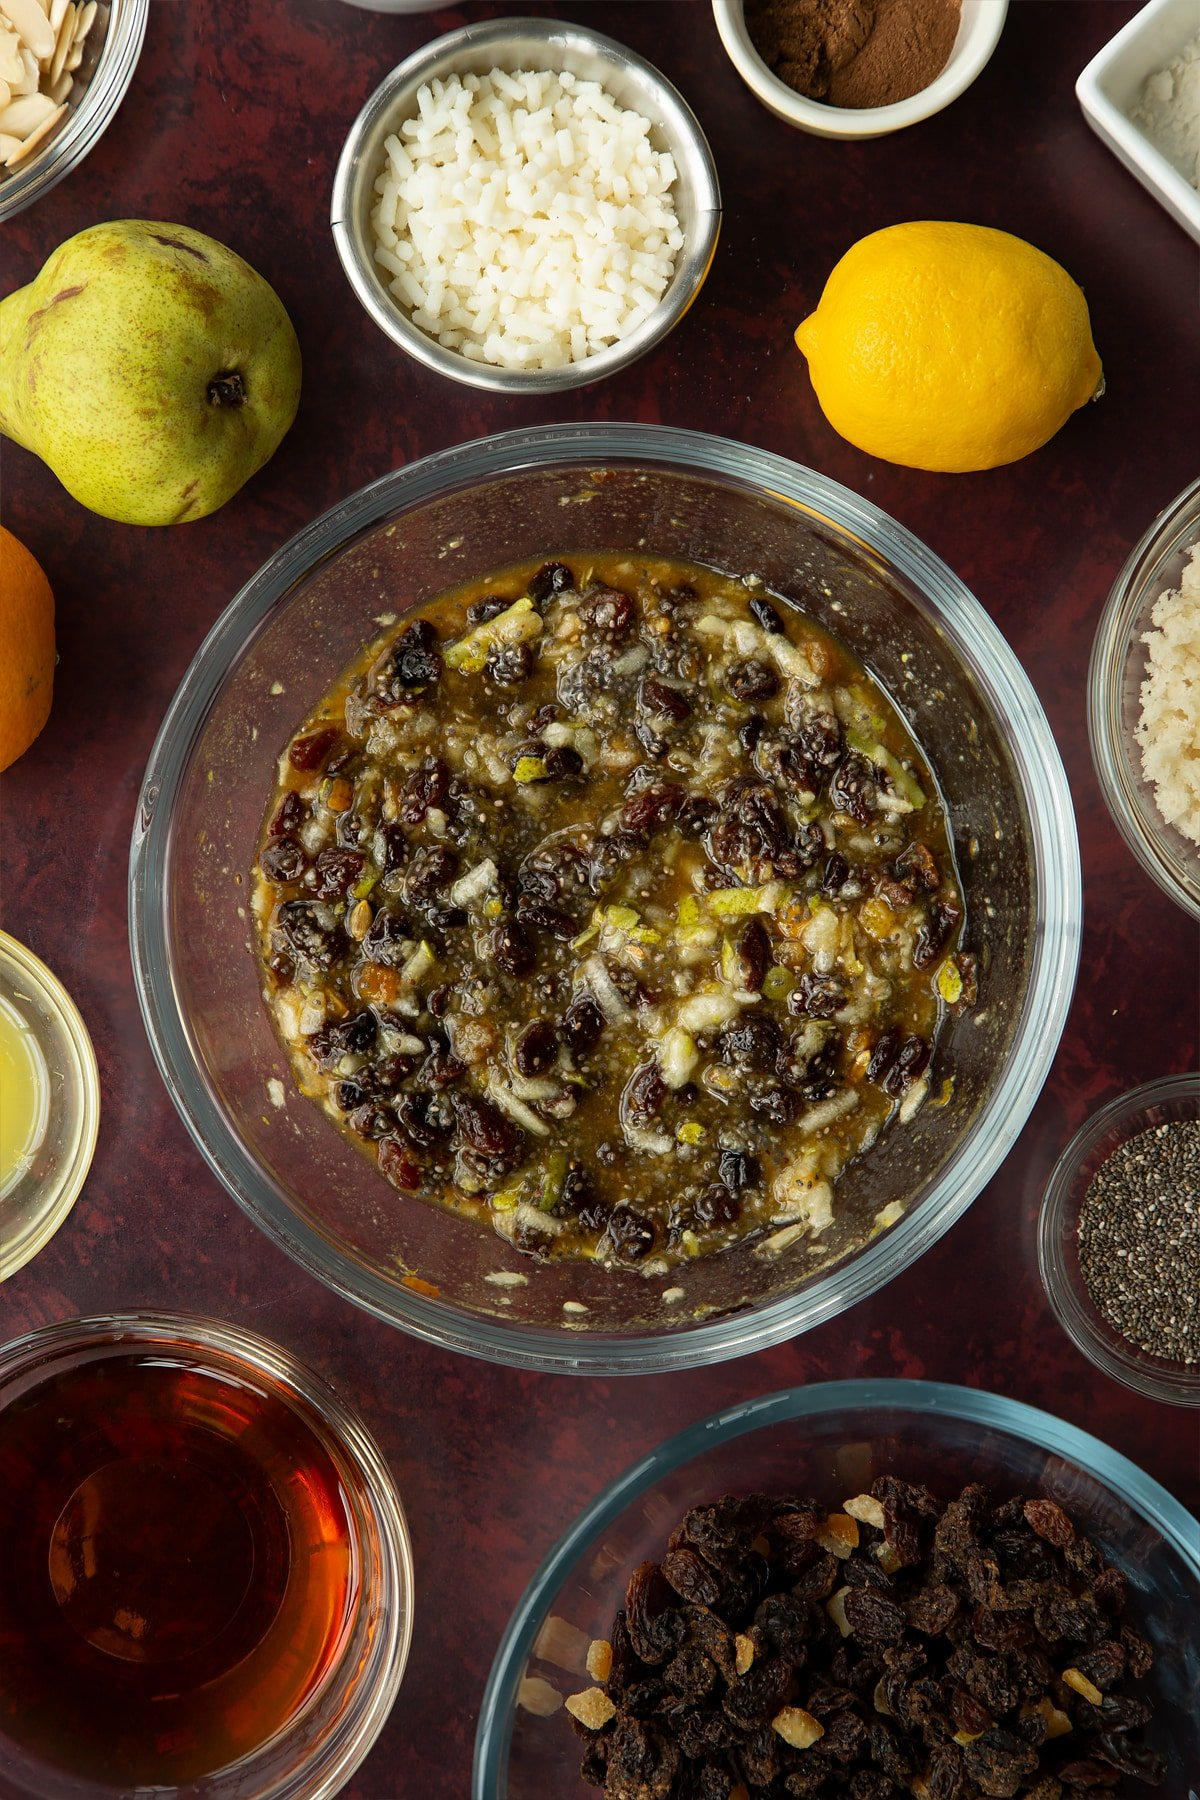 Plump mixed fruit, pear, soaked chia seeds, black treacle and sugar mixed together in a glass bowl. Ingredients to make vegan Christmas pudding surround the bowl.